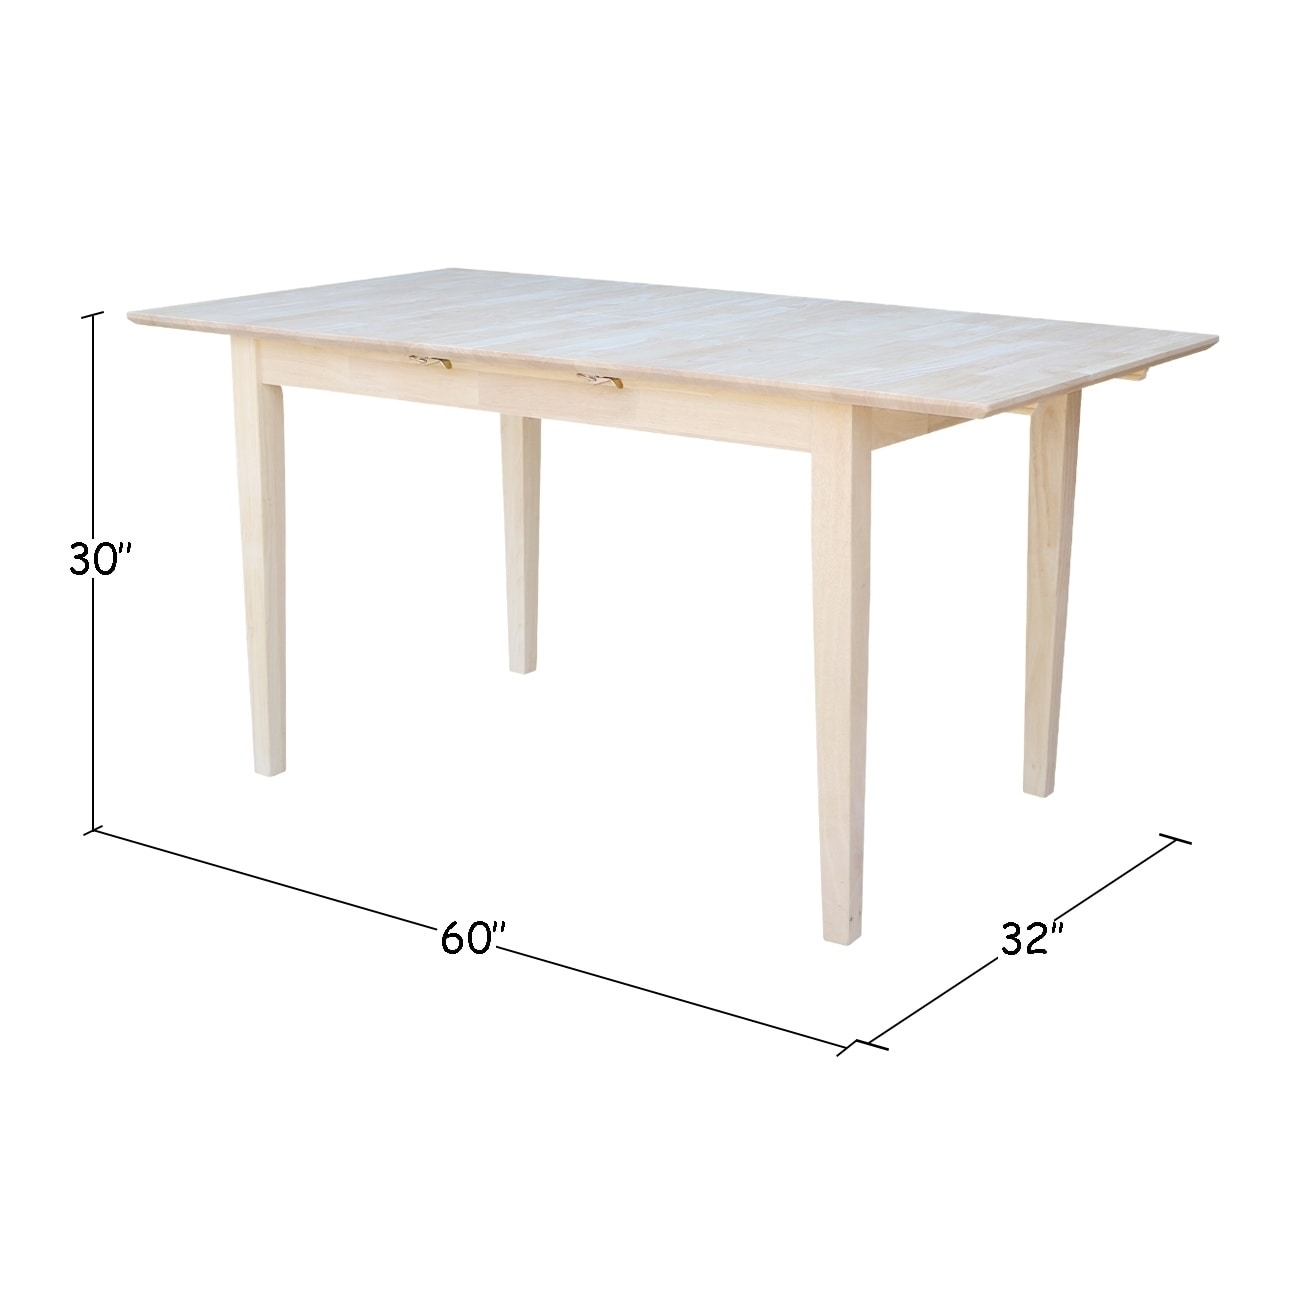 International Concepts 32 Inch Wide Unfinished Shaker Style Parawood Dining Table With Erfly Extension